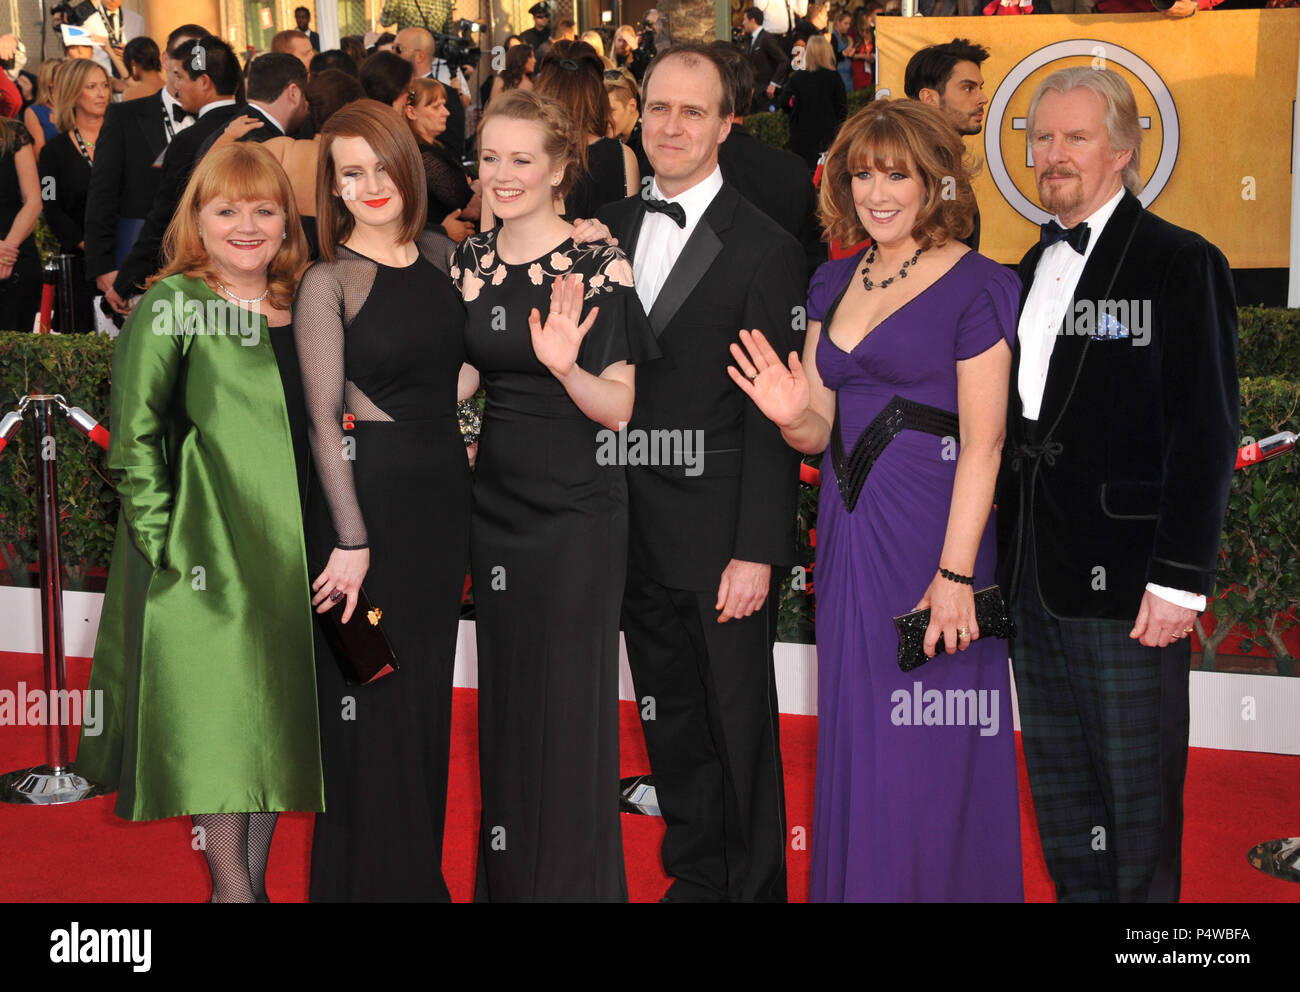 Sophie McShera, Cara Theobold, Lesley Nicol, Kevin Doyle, Phyllis Logan, and David Robb arriving at the 20th SAG Awards 2014 at the Shrine Auditorium in Los Angeles.Sophie McShera, Cara Theobold, Lesley Nicol, Kevin Doyle, Phyllis Logan, and David Robb  Event in Hollywood Life - California, Red Carpet Event, USA, Film Industry, Celebrities, Photography, Bestof, Arts Culture and Entertainment, Topix Celebrities fashion, Best of, Hollywood Life, Event in Hollywood Life - California, Red Carpet and backstage, movie celebrities, TV celebrities, Music celebrities, Topix, actors from the same movie, - Stock Image